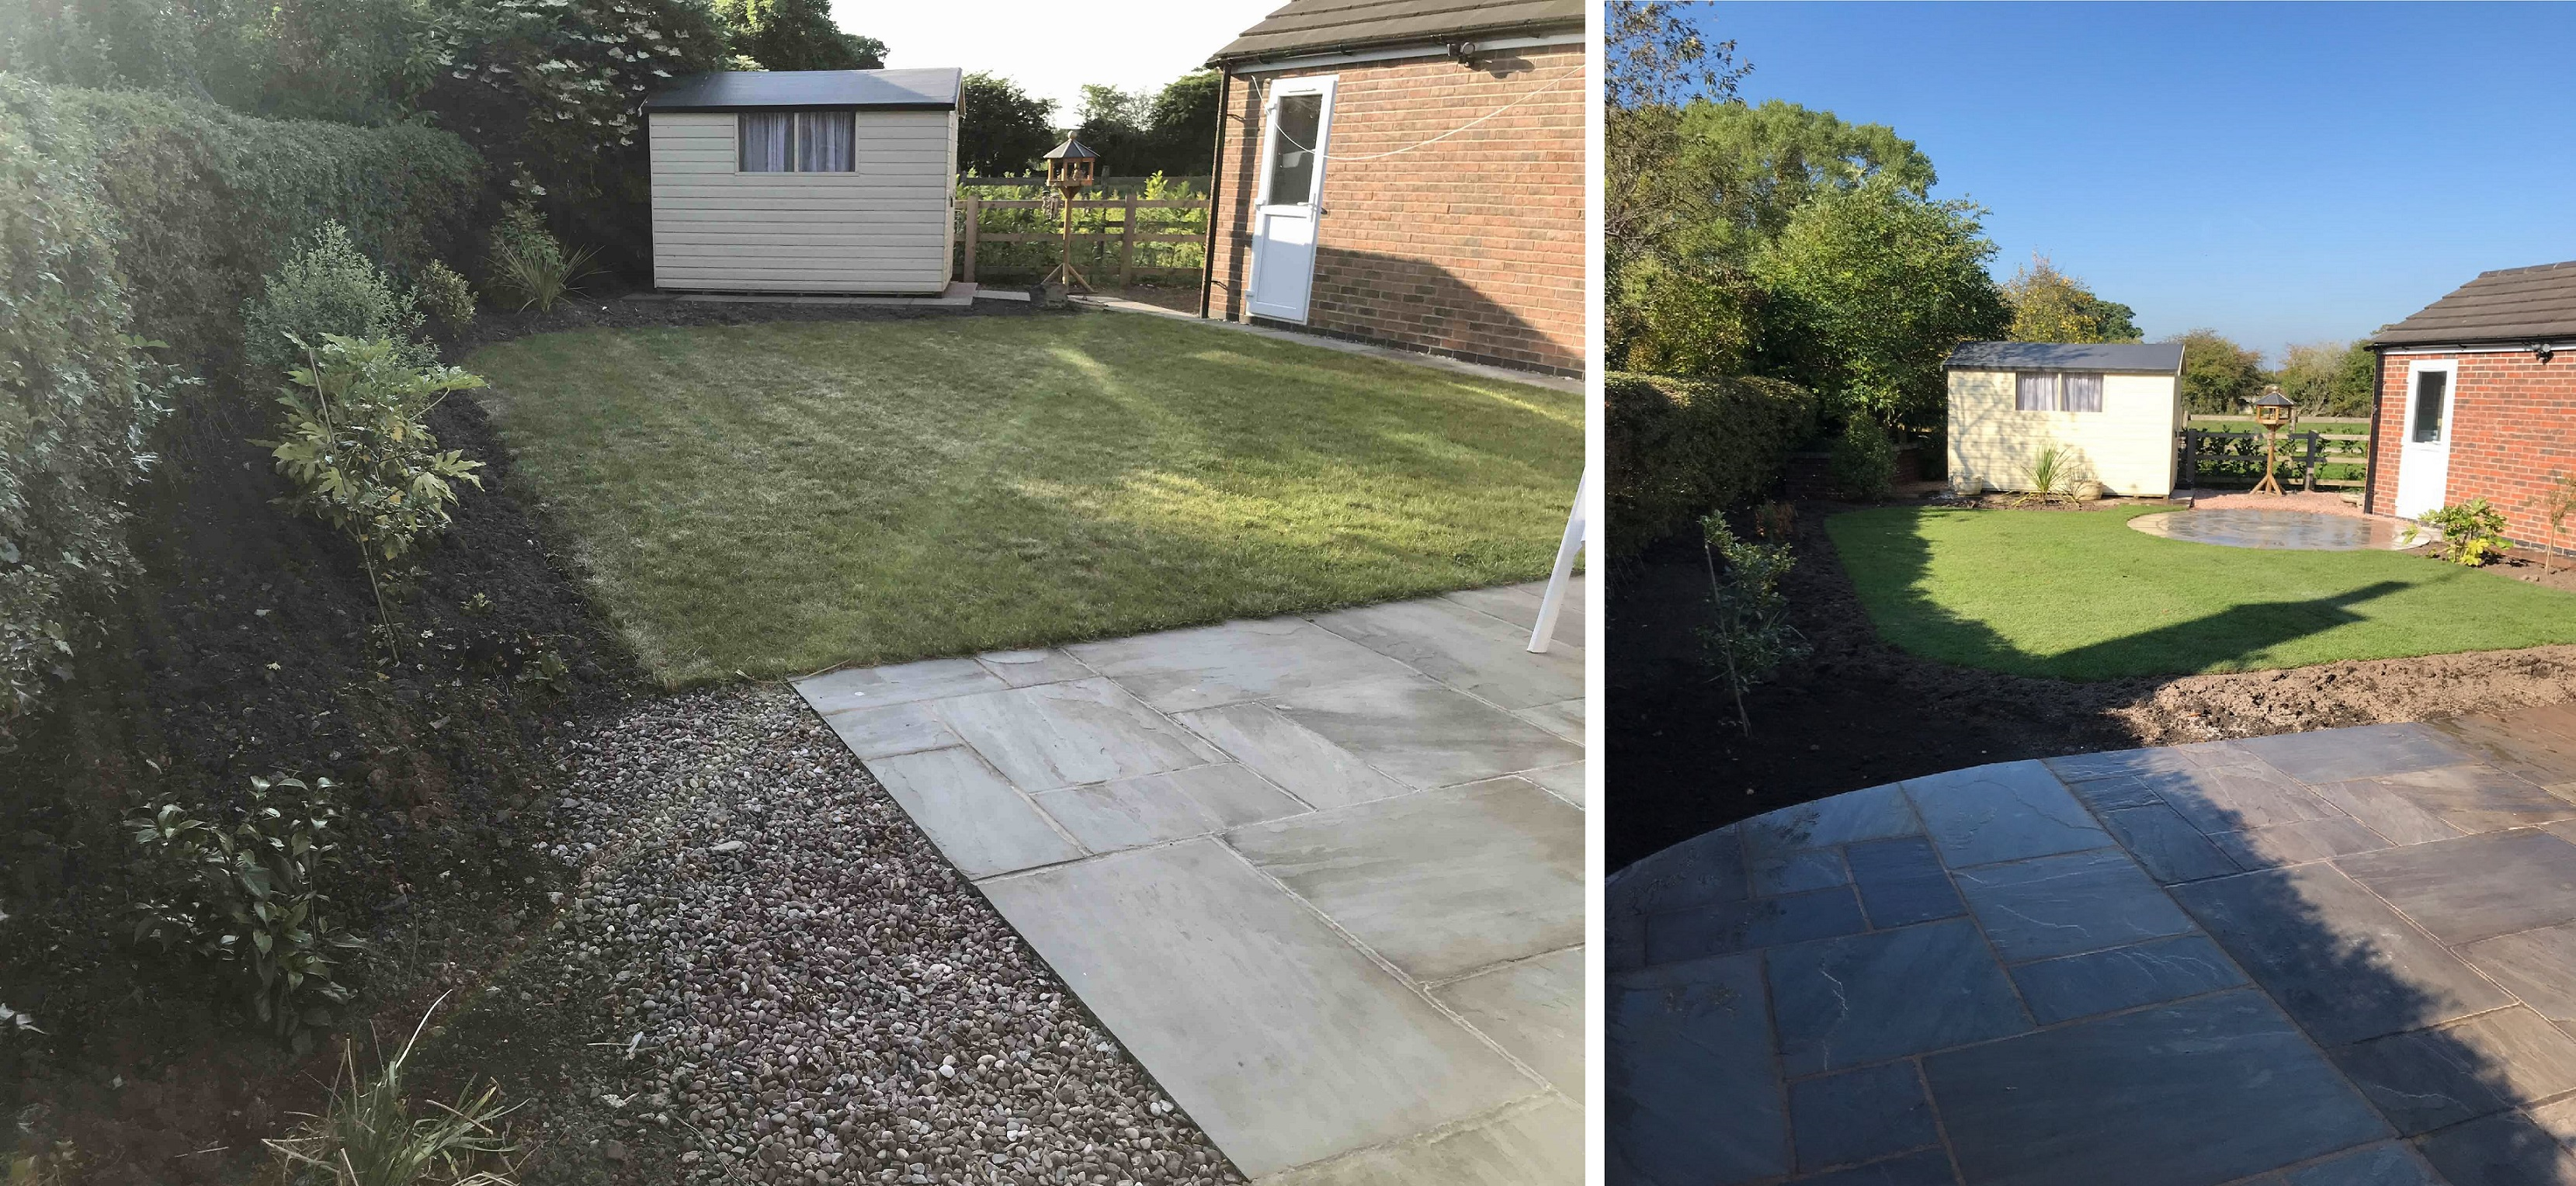 Landscaping in Stone - Before and After